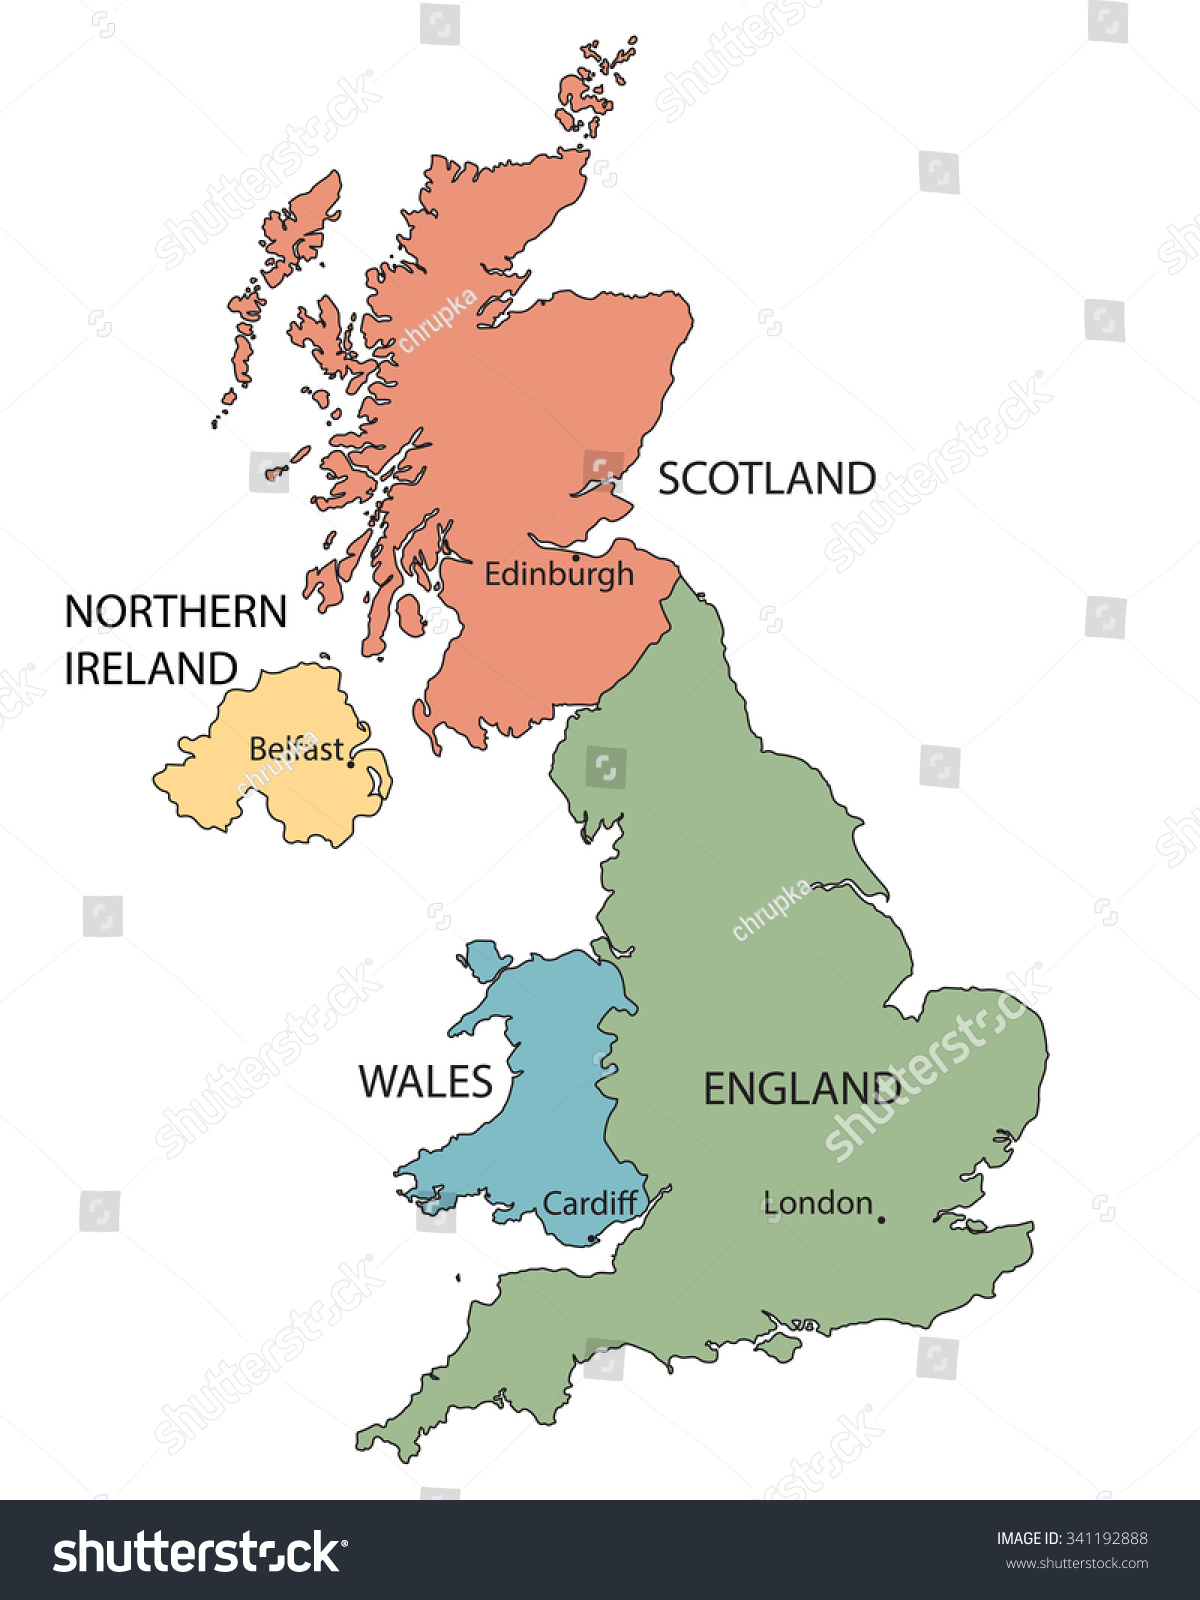 Colorful map countries united kingdom indication vector de colorful map countries united kingdom indication vector de stock341192888 shutterstock gumiabroncs Image collections